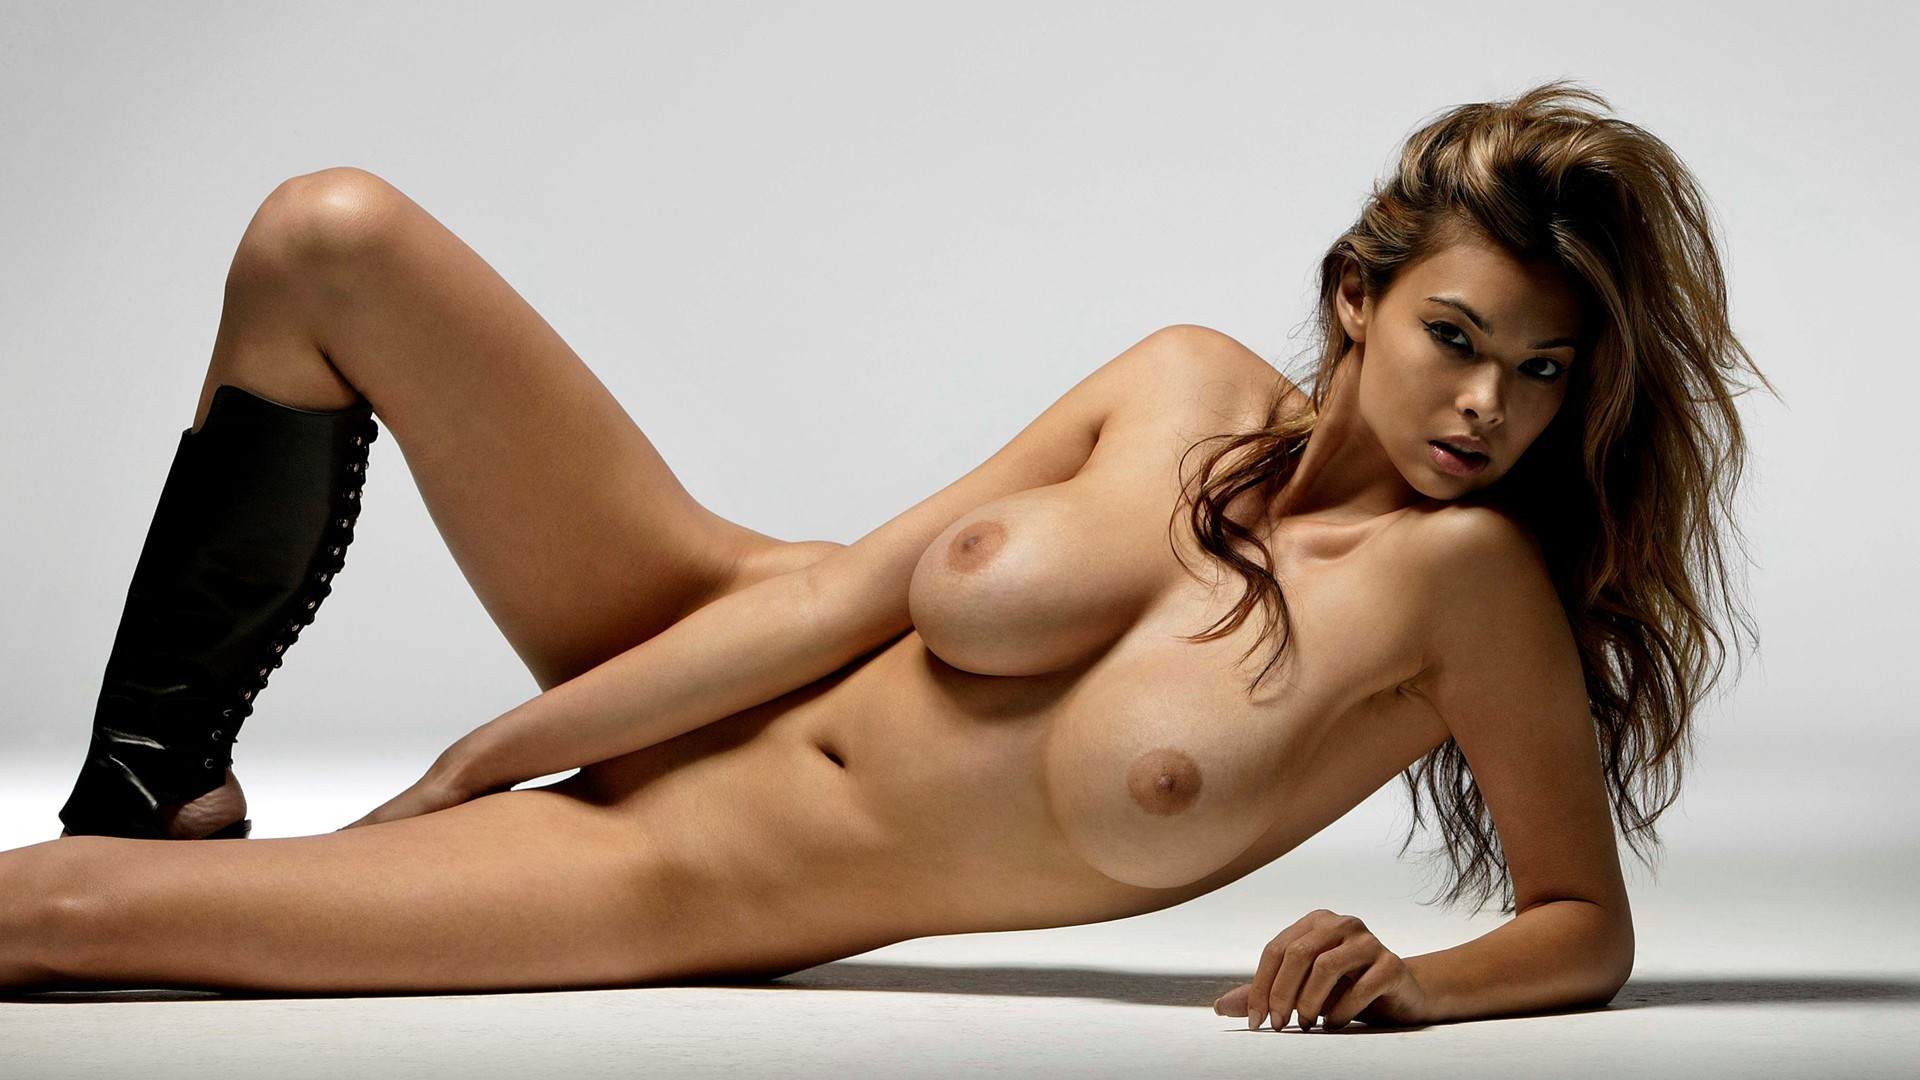 Unbelievably sexy girl nude — photo 9